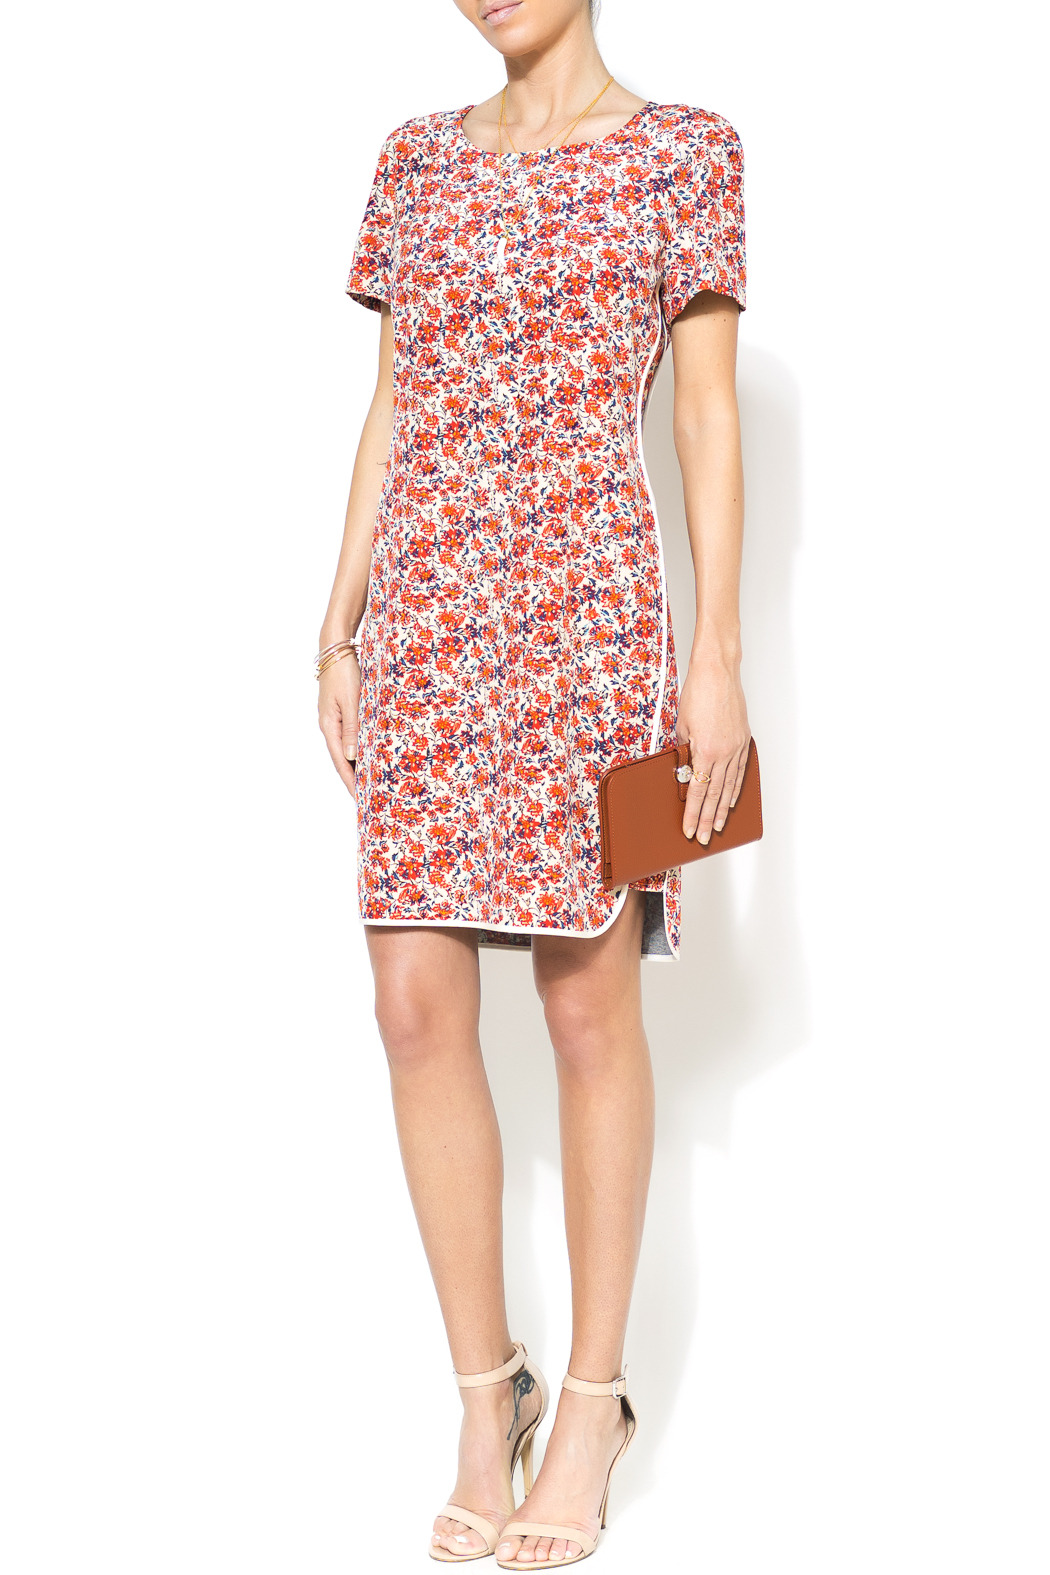 Rebecca Taylor Sweet William Dress - Front Full Image